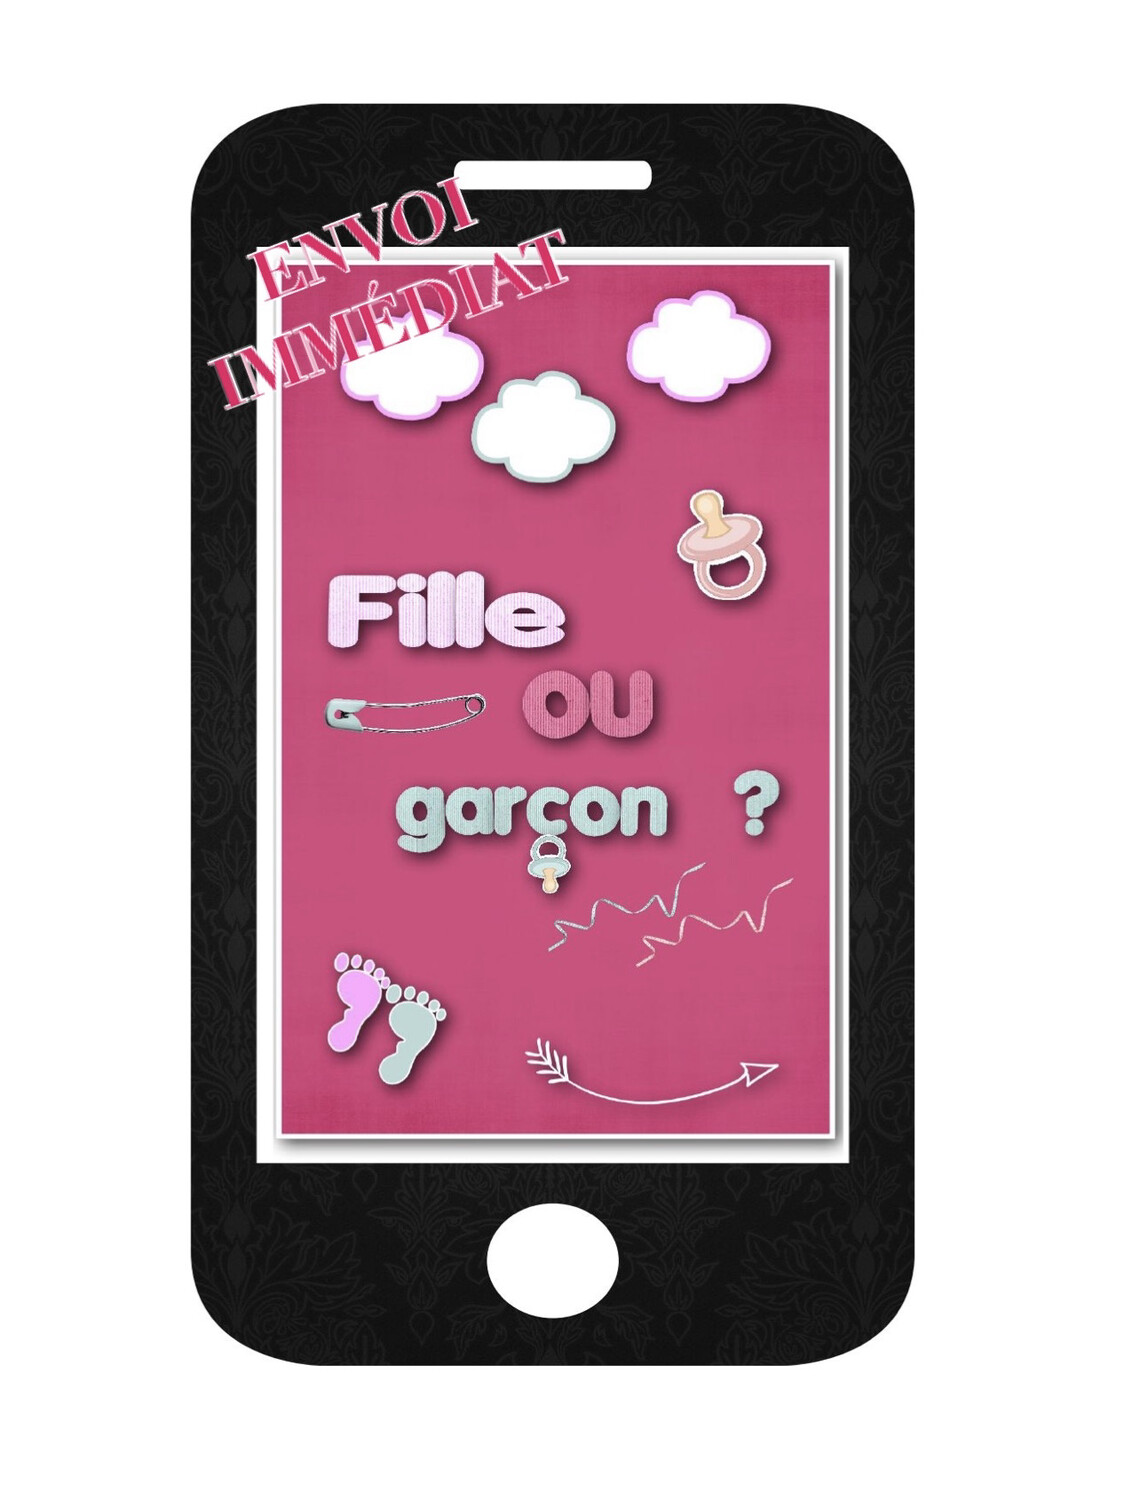 Annonce grossesse fille